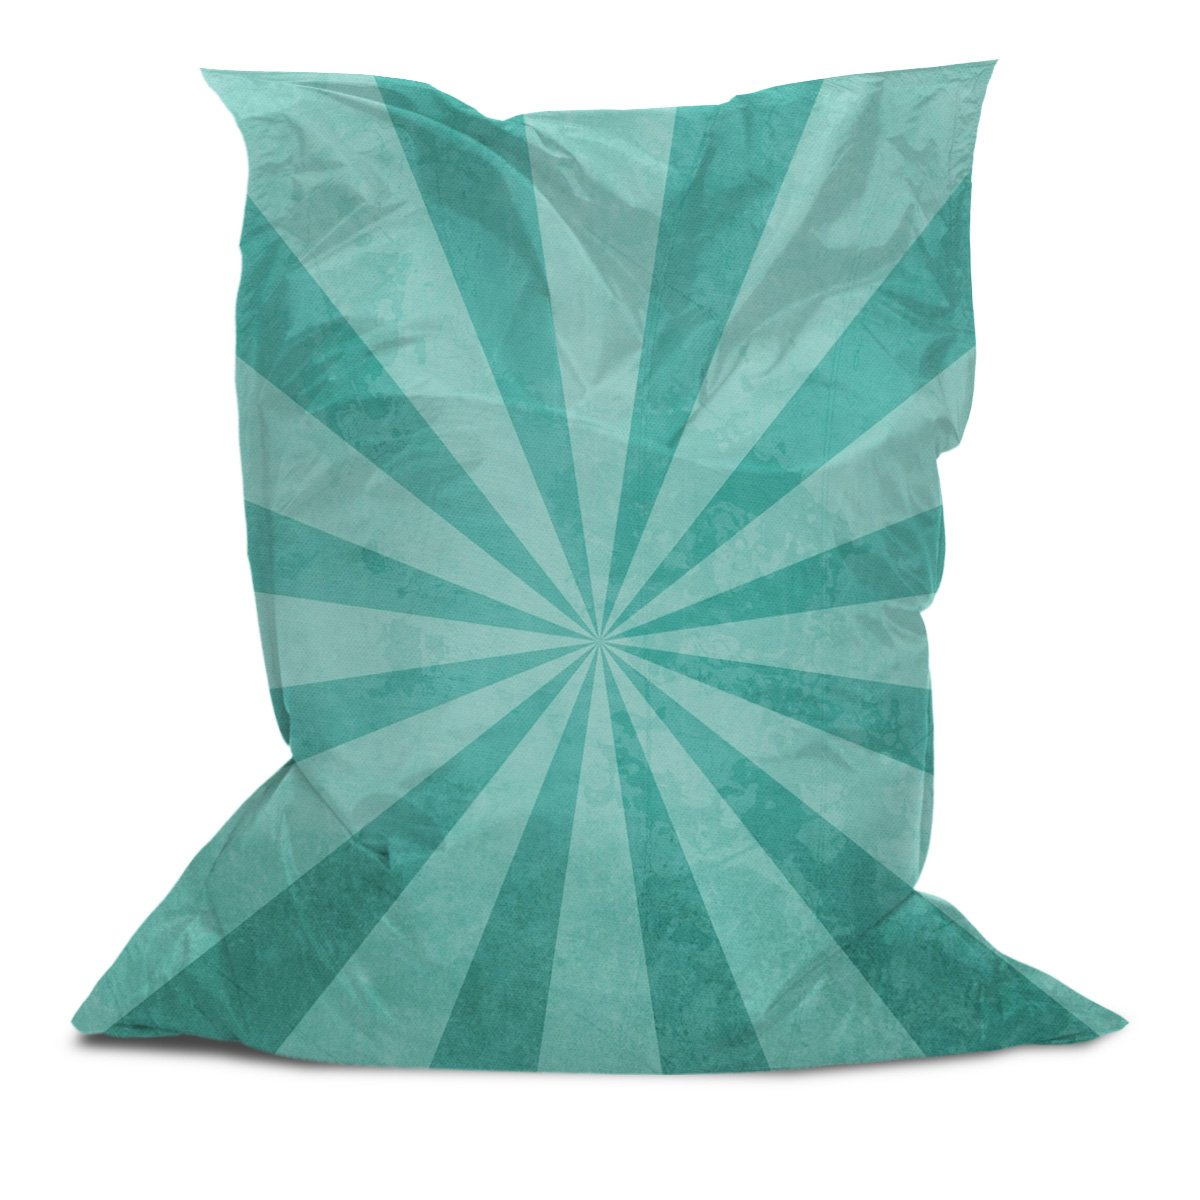 Branded Bean Bag with Printed Retro Background (3' x 4.4')